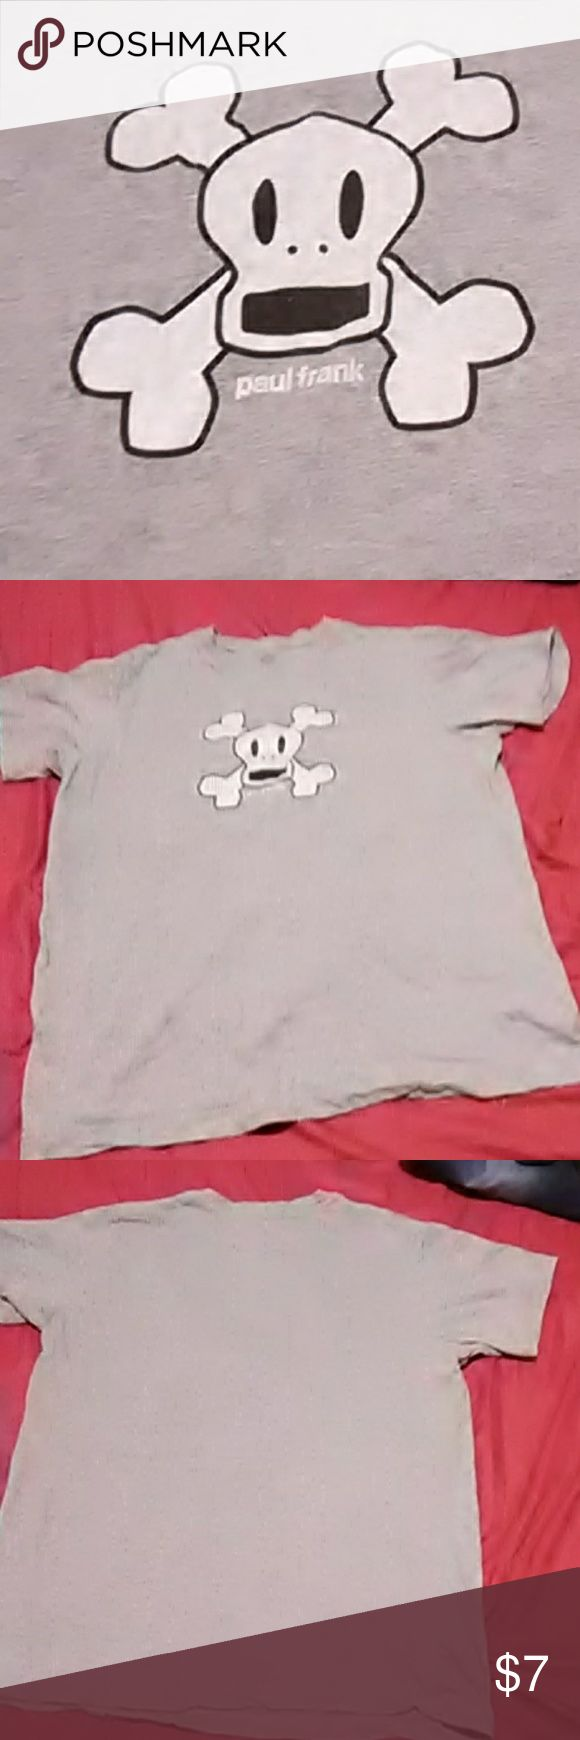 Paul Frank 🐒 Monkey 💀 Skull Tee Cute as can be Paul Frank Gray Monkey Skull and Crossbones Tee. This shirt is a size small and can be Unisex! This shirt is so soft and comfortable and cute!! Paul Frank Shirts Tees - Short Sleeve